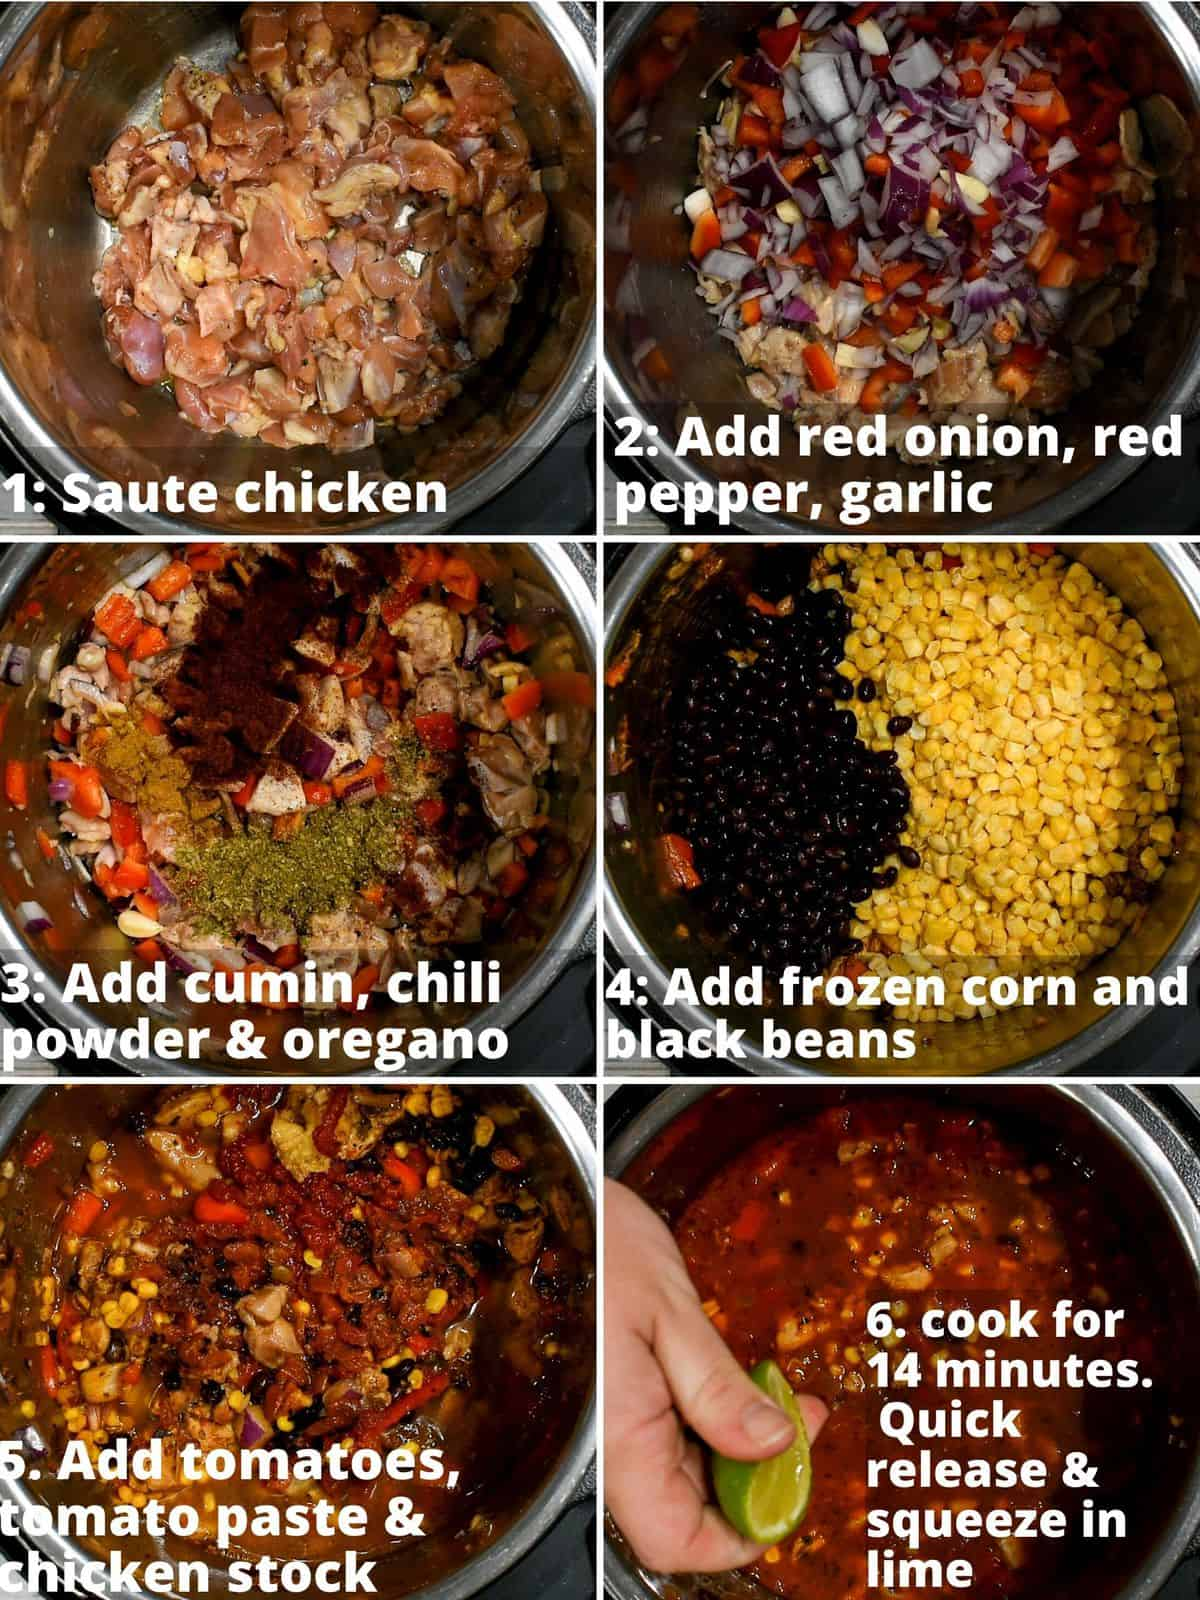 step by step instructions for making instant pot chicken tortilla soup